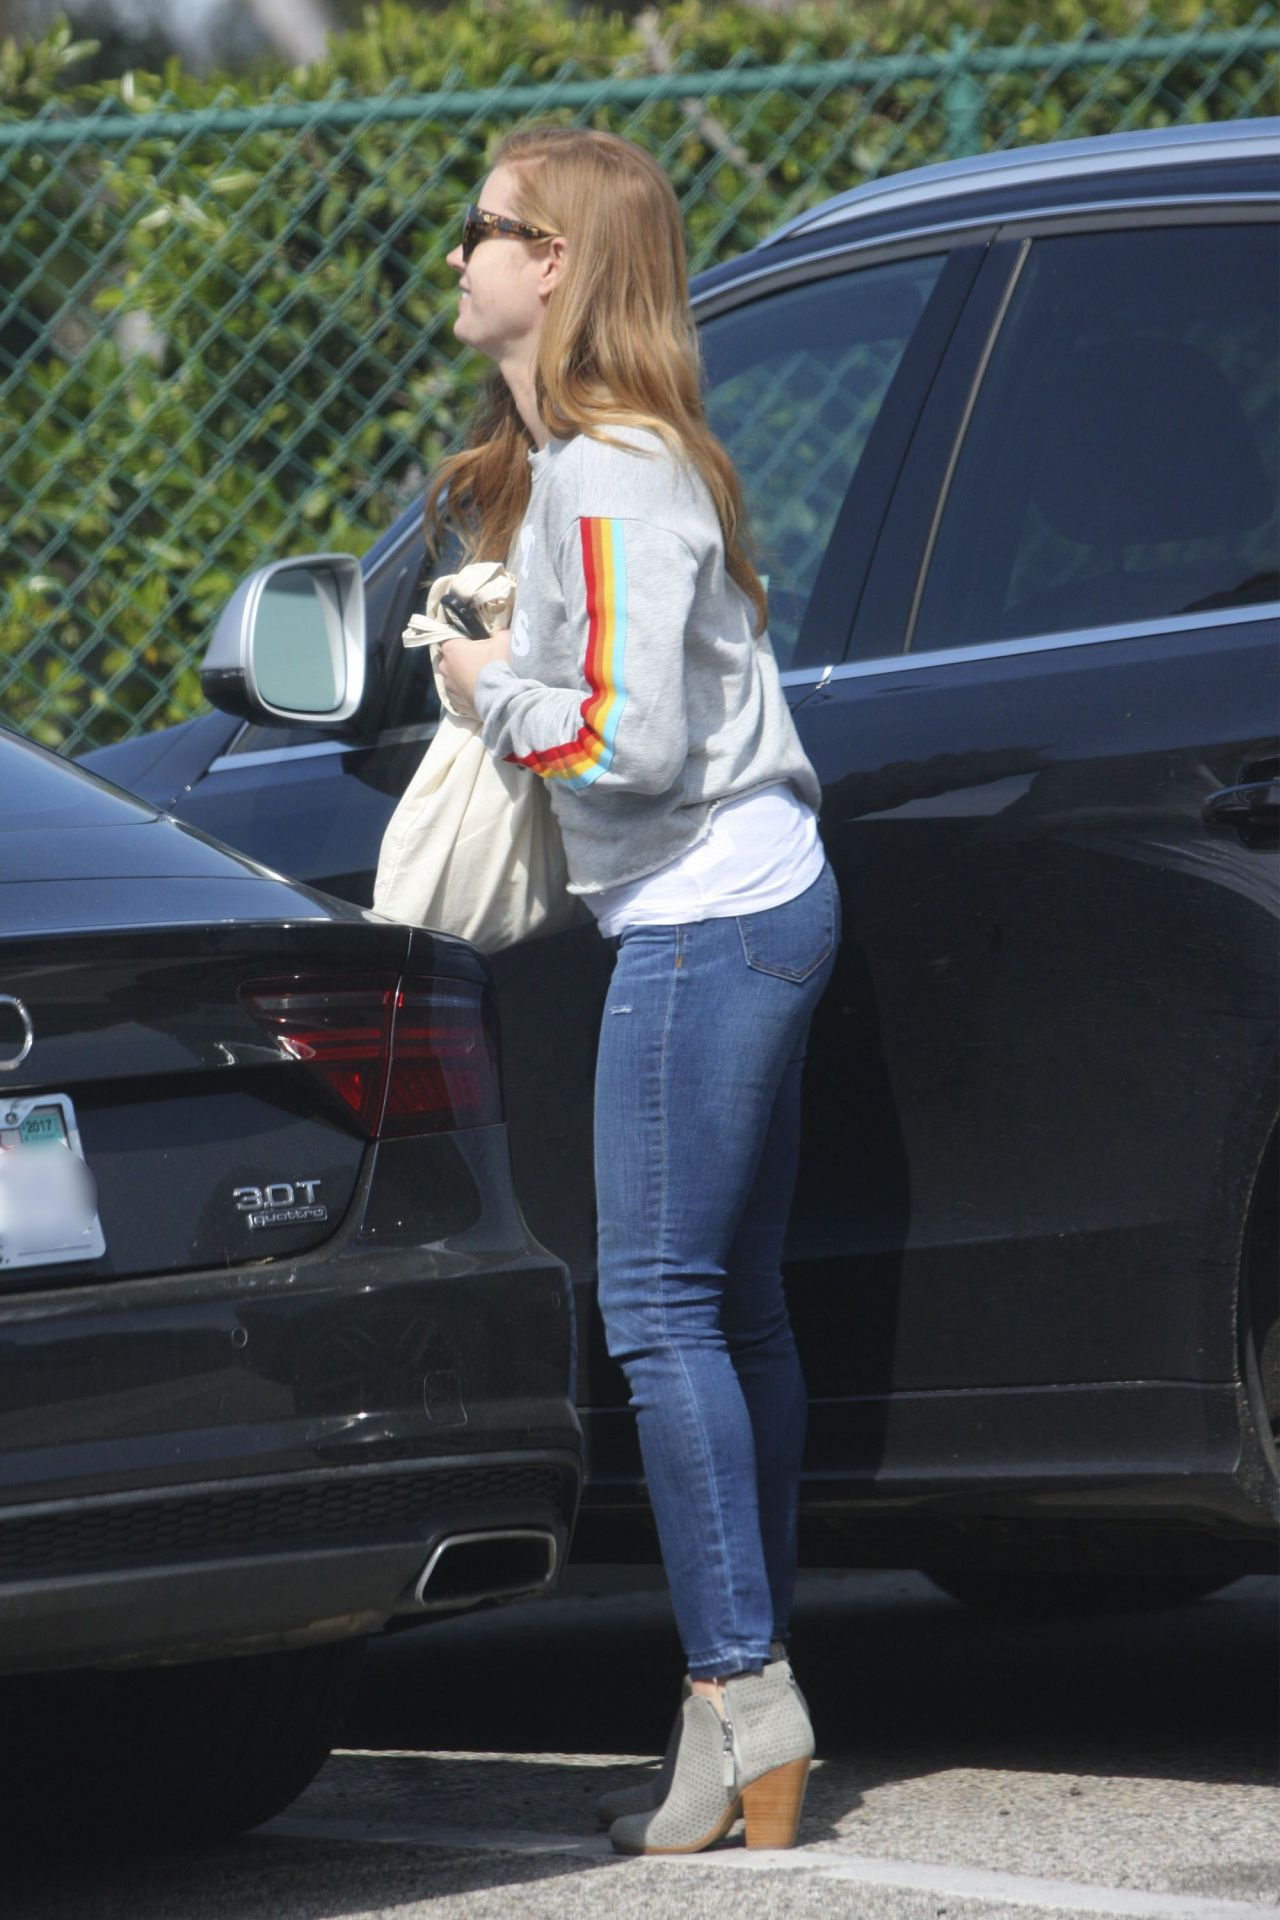 Amy Adams Booty In Jeans Shopping In Los Angeles 2 25 2017